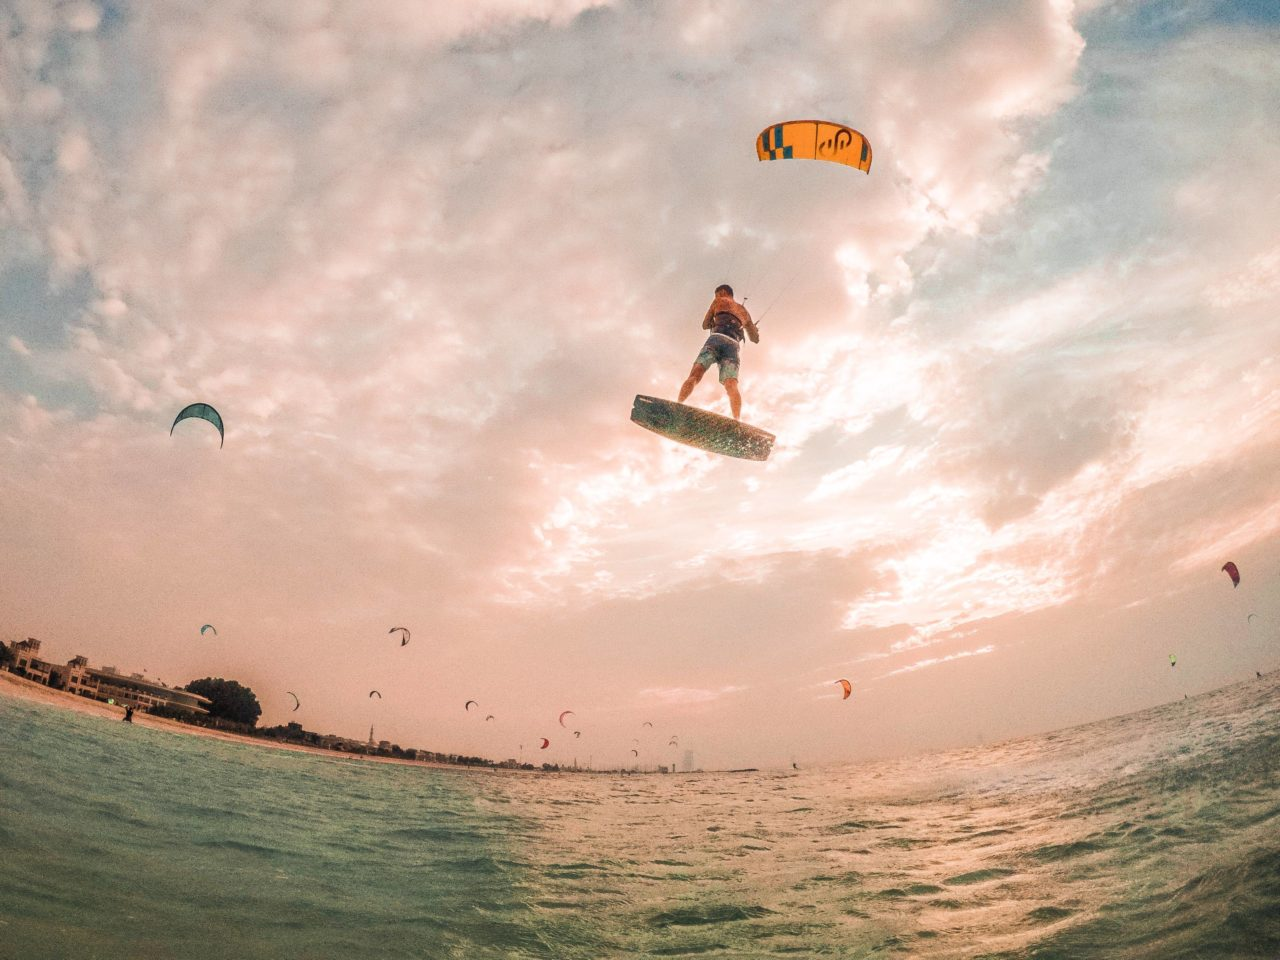 Kite n Surf main